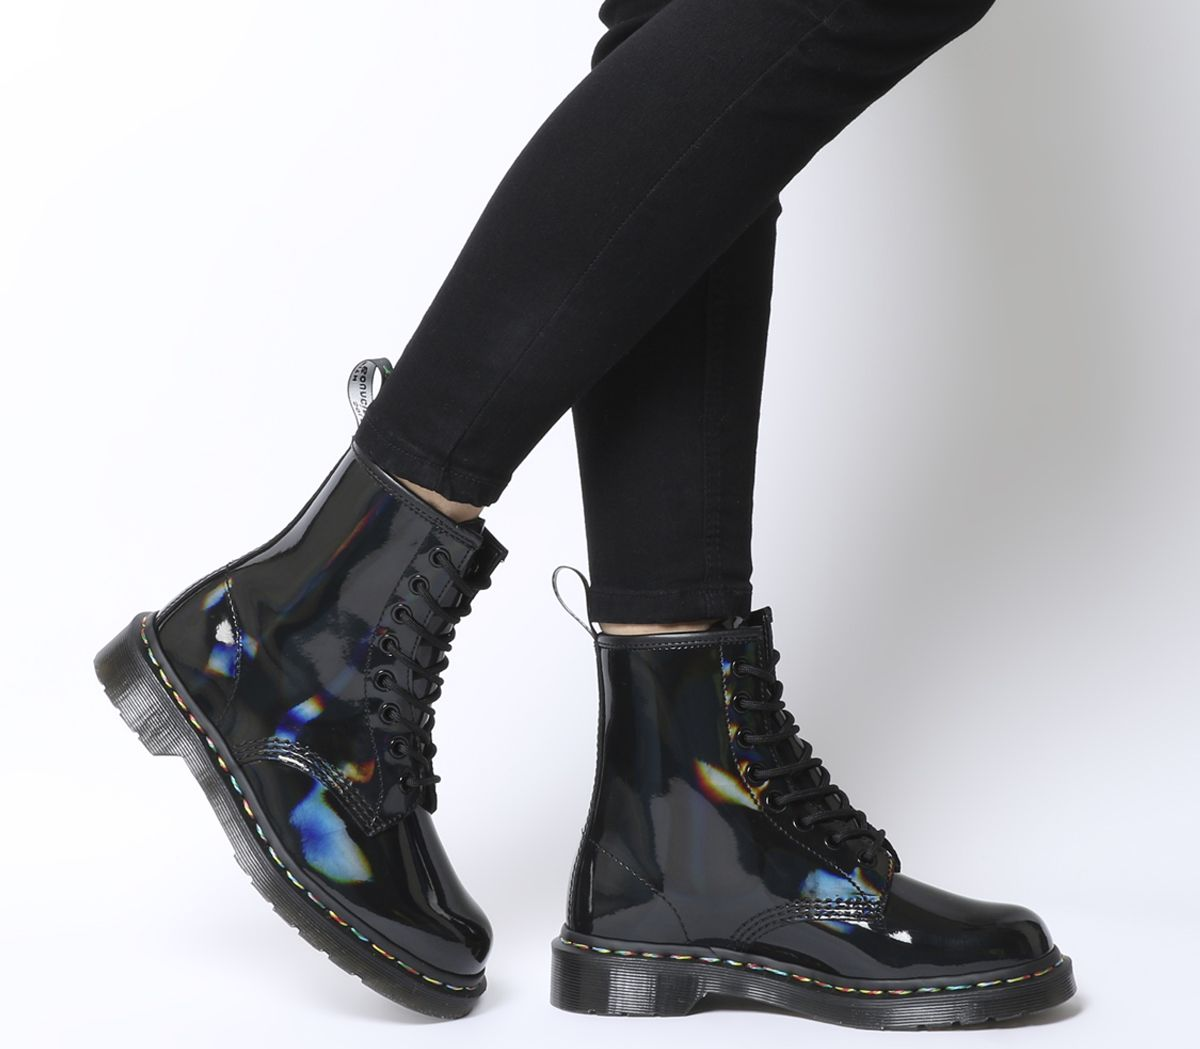 9ad0652aaed306 Dr. Martens 8 Eyelet Lace Up Boots Black Rainbow - Ankle Boots